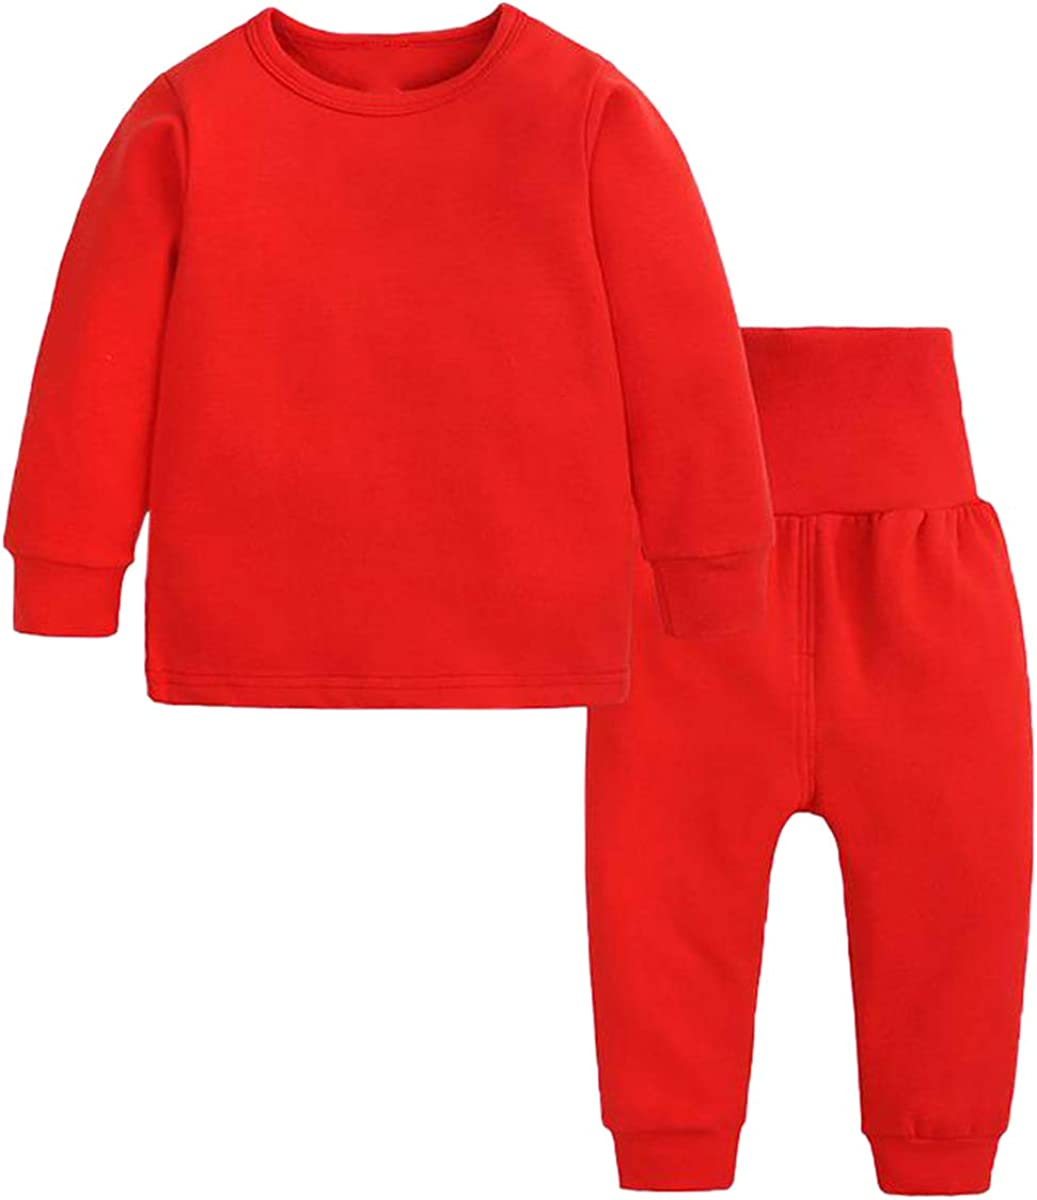 Toddler Girl's Thermal Underwear Set Base Layer Top & Bottom Set, Red, 18-24 Months = Tag 100